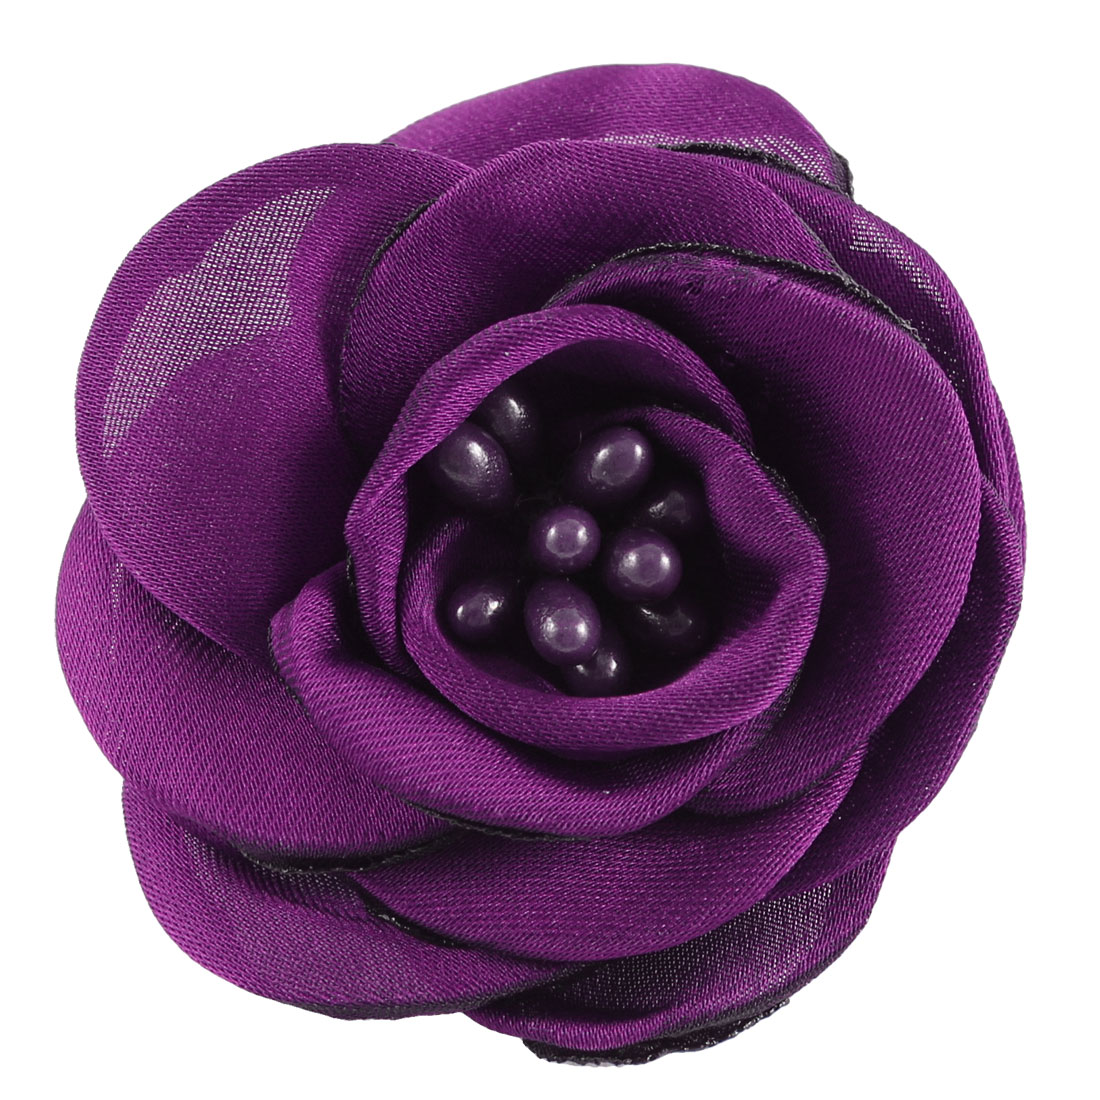 Lady Parties Wedding Fabric Flower Shape Corsage Brooch Pin Purple